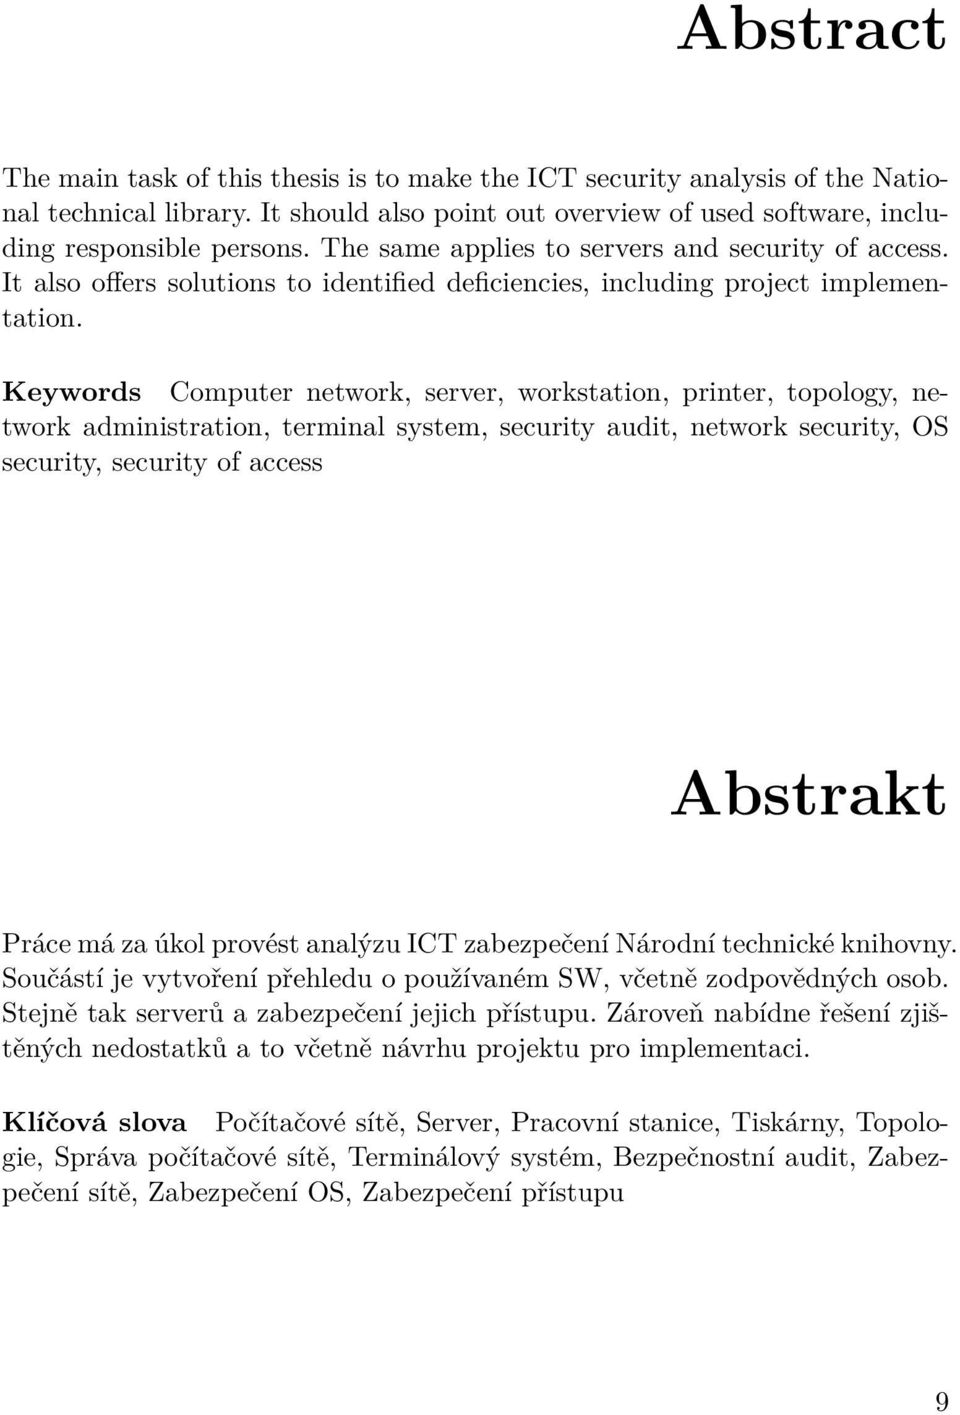 Keywords Computer network, server, workstation, printer, topology, network administration, terminal system, security audit, network security, OS security, security of access Abstrakt Práce má za úkol